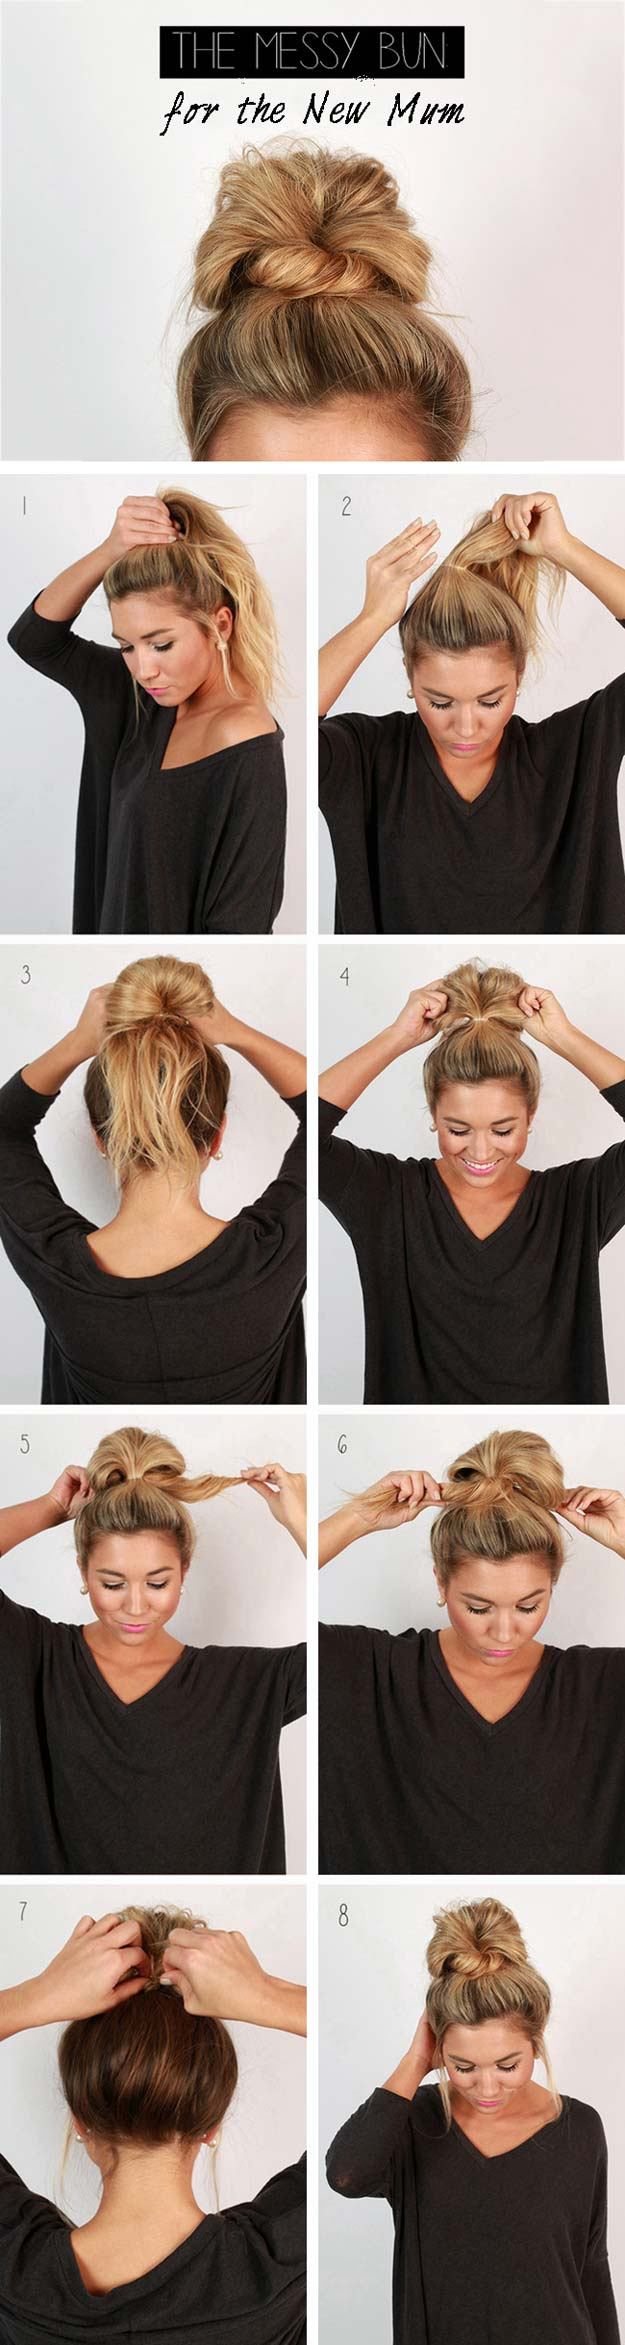 20 DIY Cool Easy Hairstyles